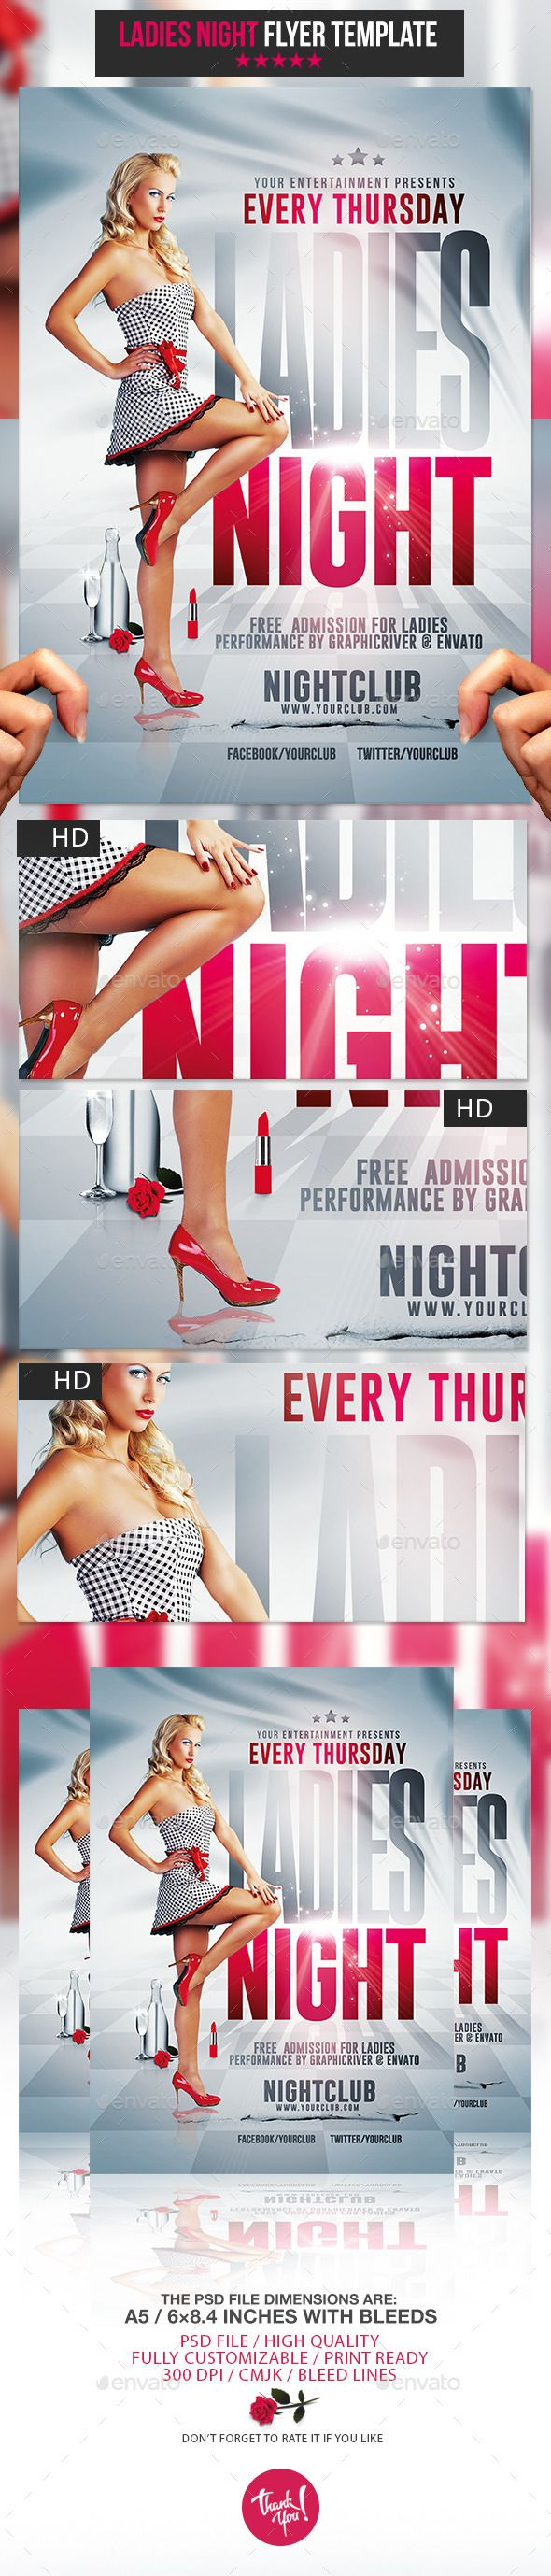 Ladies Night Party | Psd Flyer Template — Photoshop PSD #lighting #city • Available here → https://graphicriver.net/item/ladies-night-party-psd-flyer-template/10801586?ref=pxcr